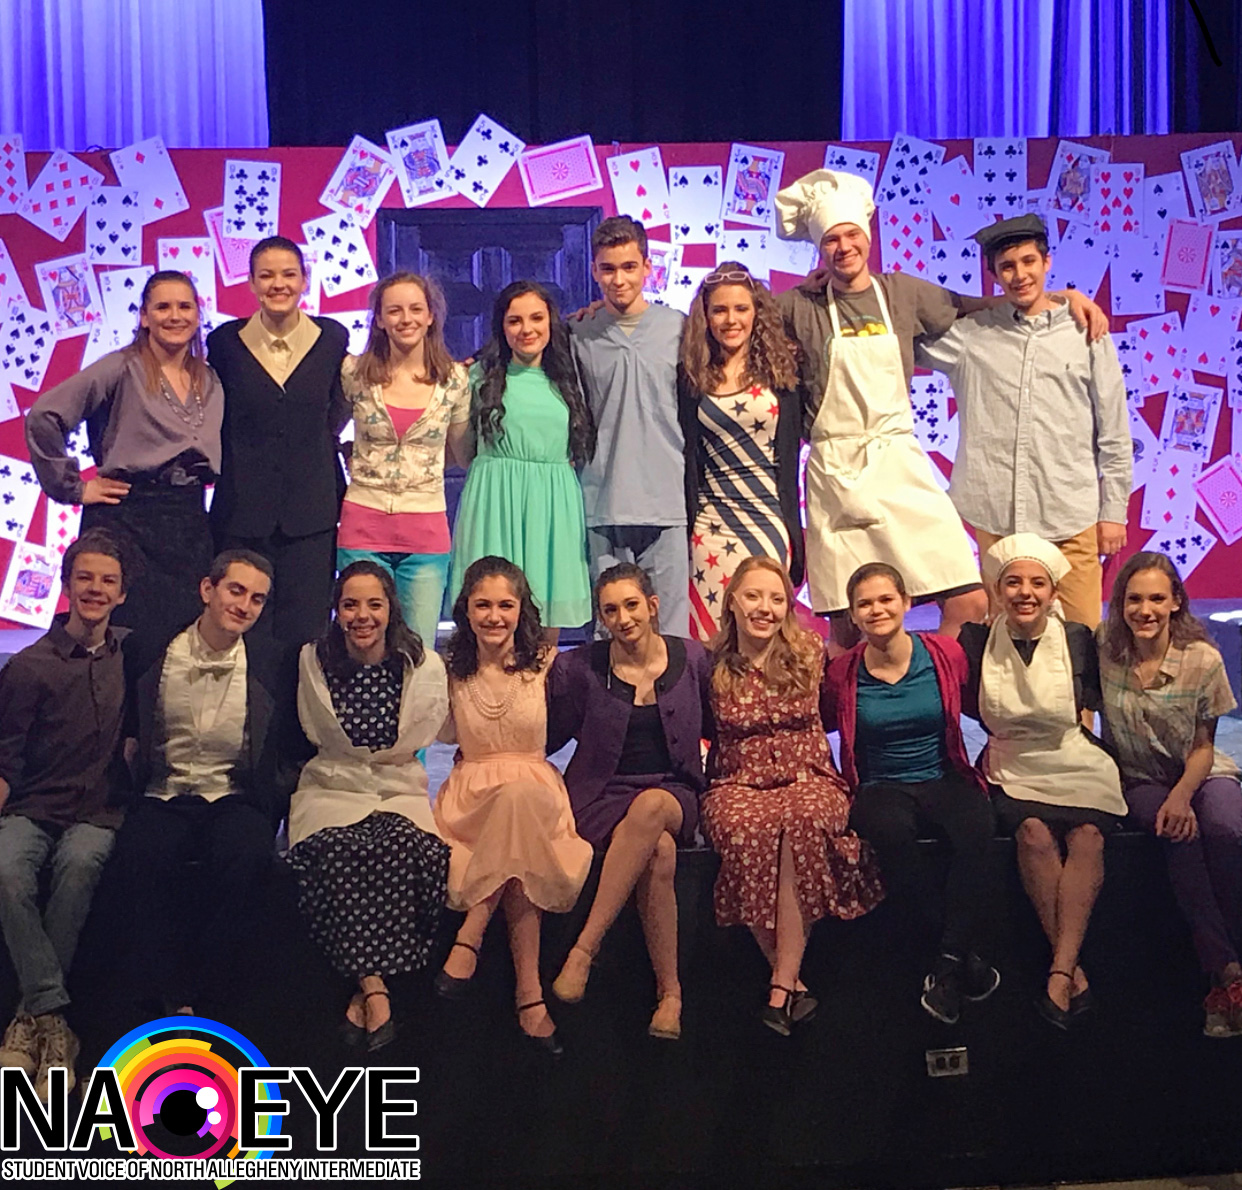 The extremely talented cast of The Westing Game. Congrats on the great show!